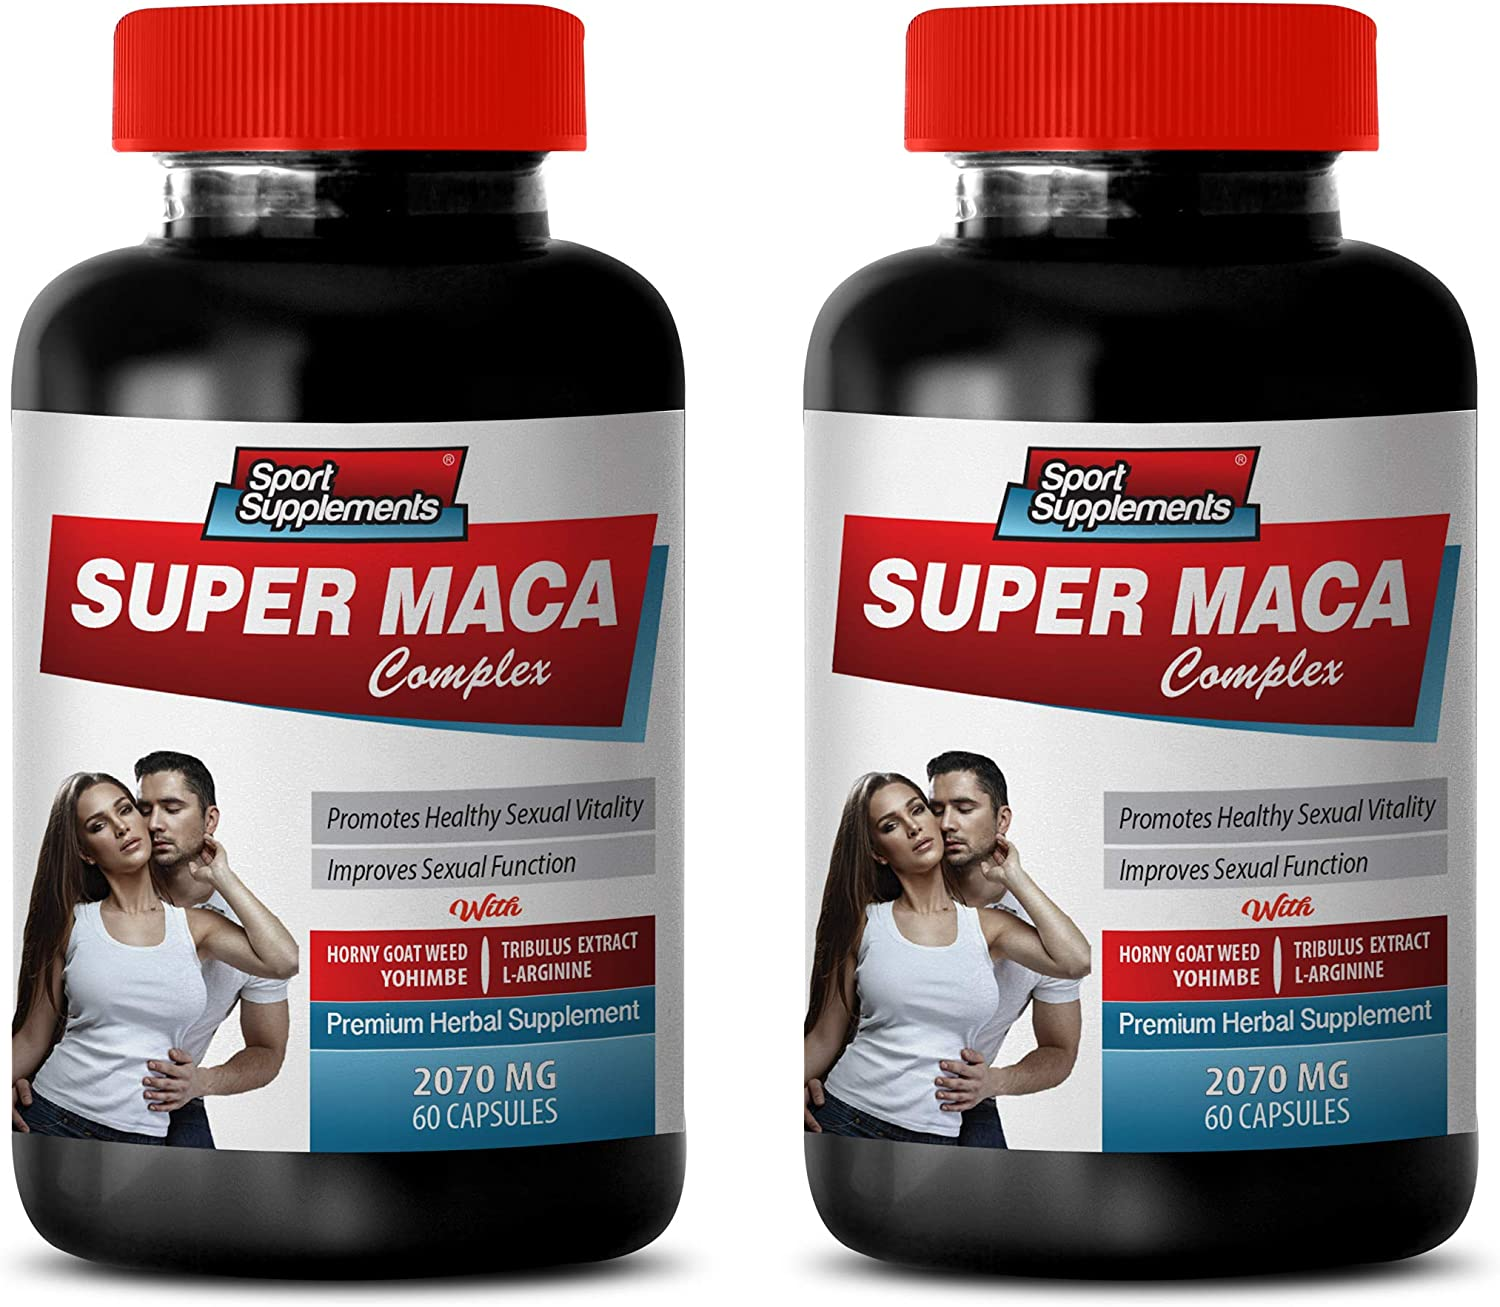 Testosterone Booster Horny Goat Max 56% OFF Beauty products Weed Prem Super - MACA Complex